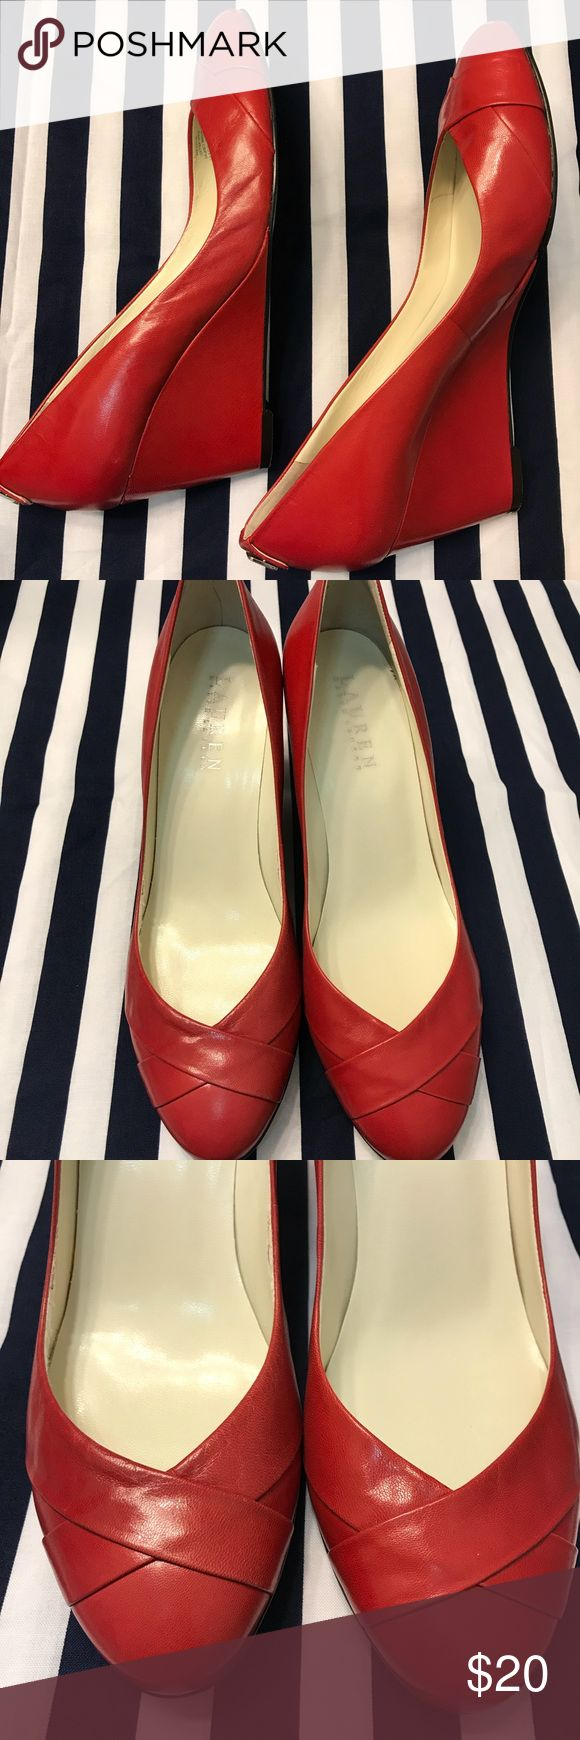 Ralph Lauren red wedge shoe Gently worn,  bright red very confortable shoes. Leather in perfect condition.  Minor sings of previous use in the interior. Heel is 7cm. High. Lauren Ralph Lauren Shoes Wedges